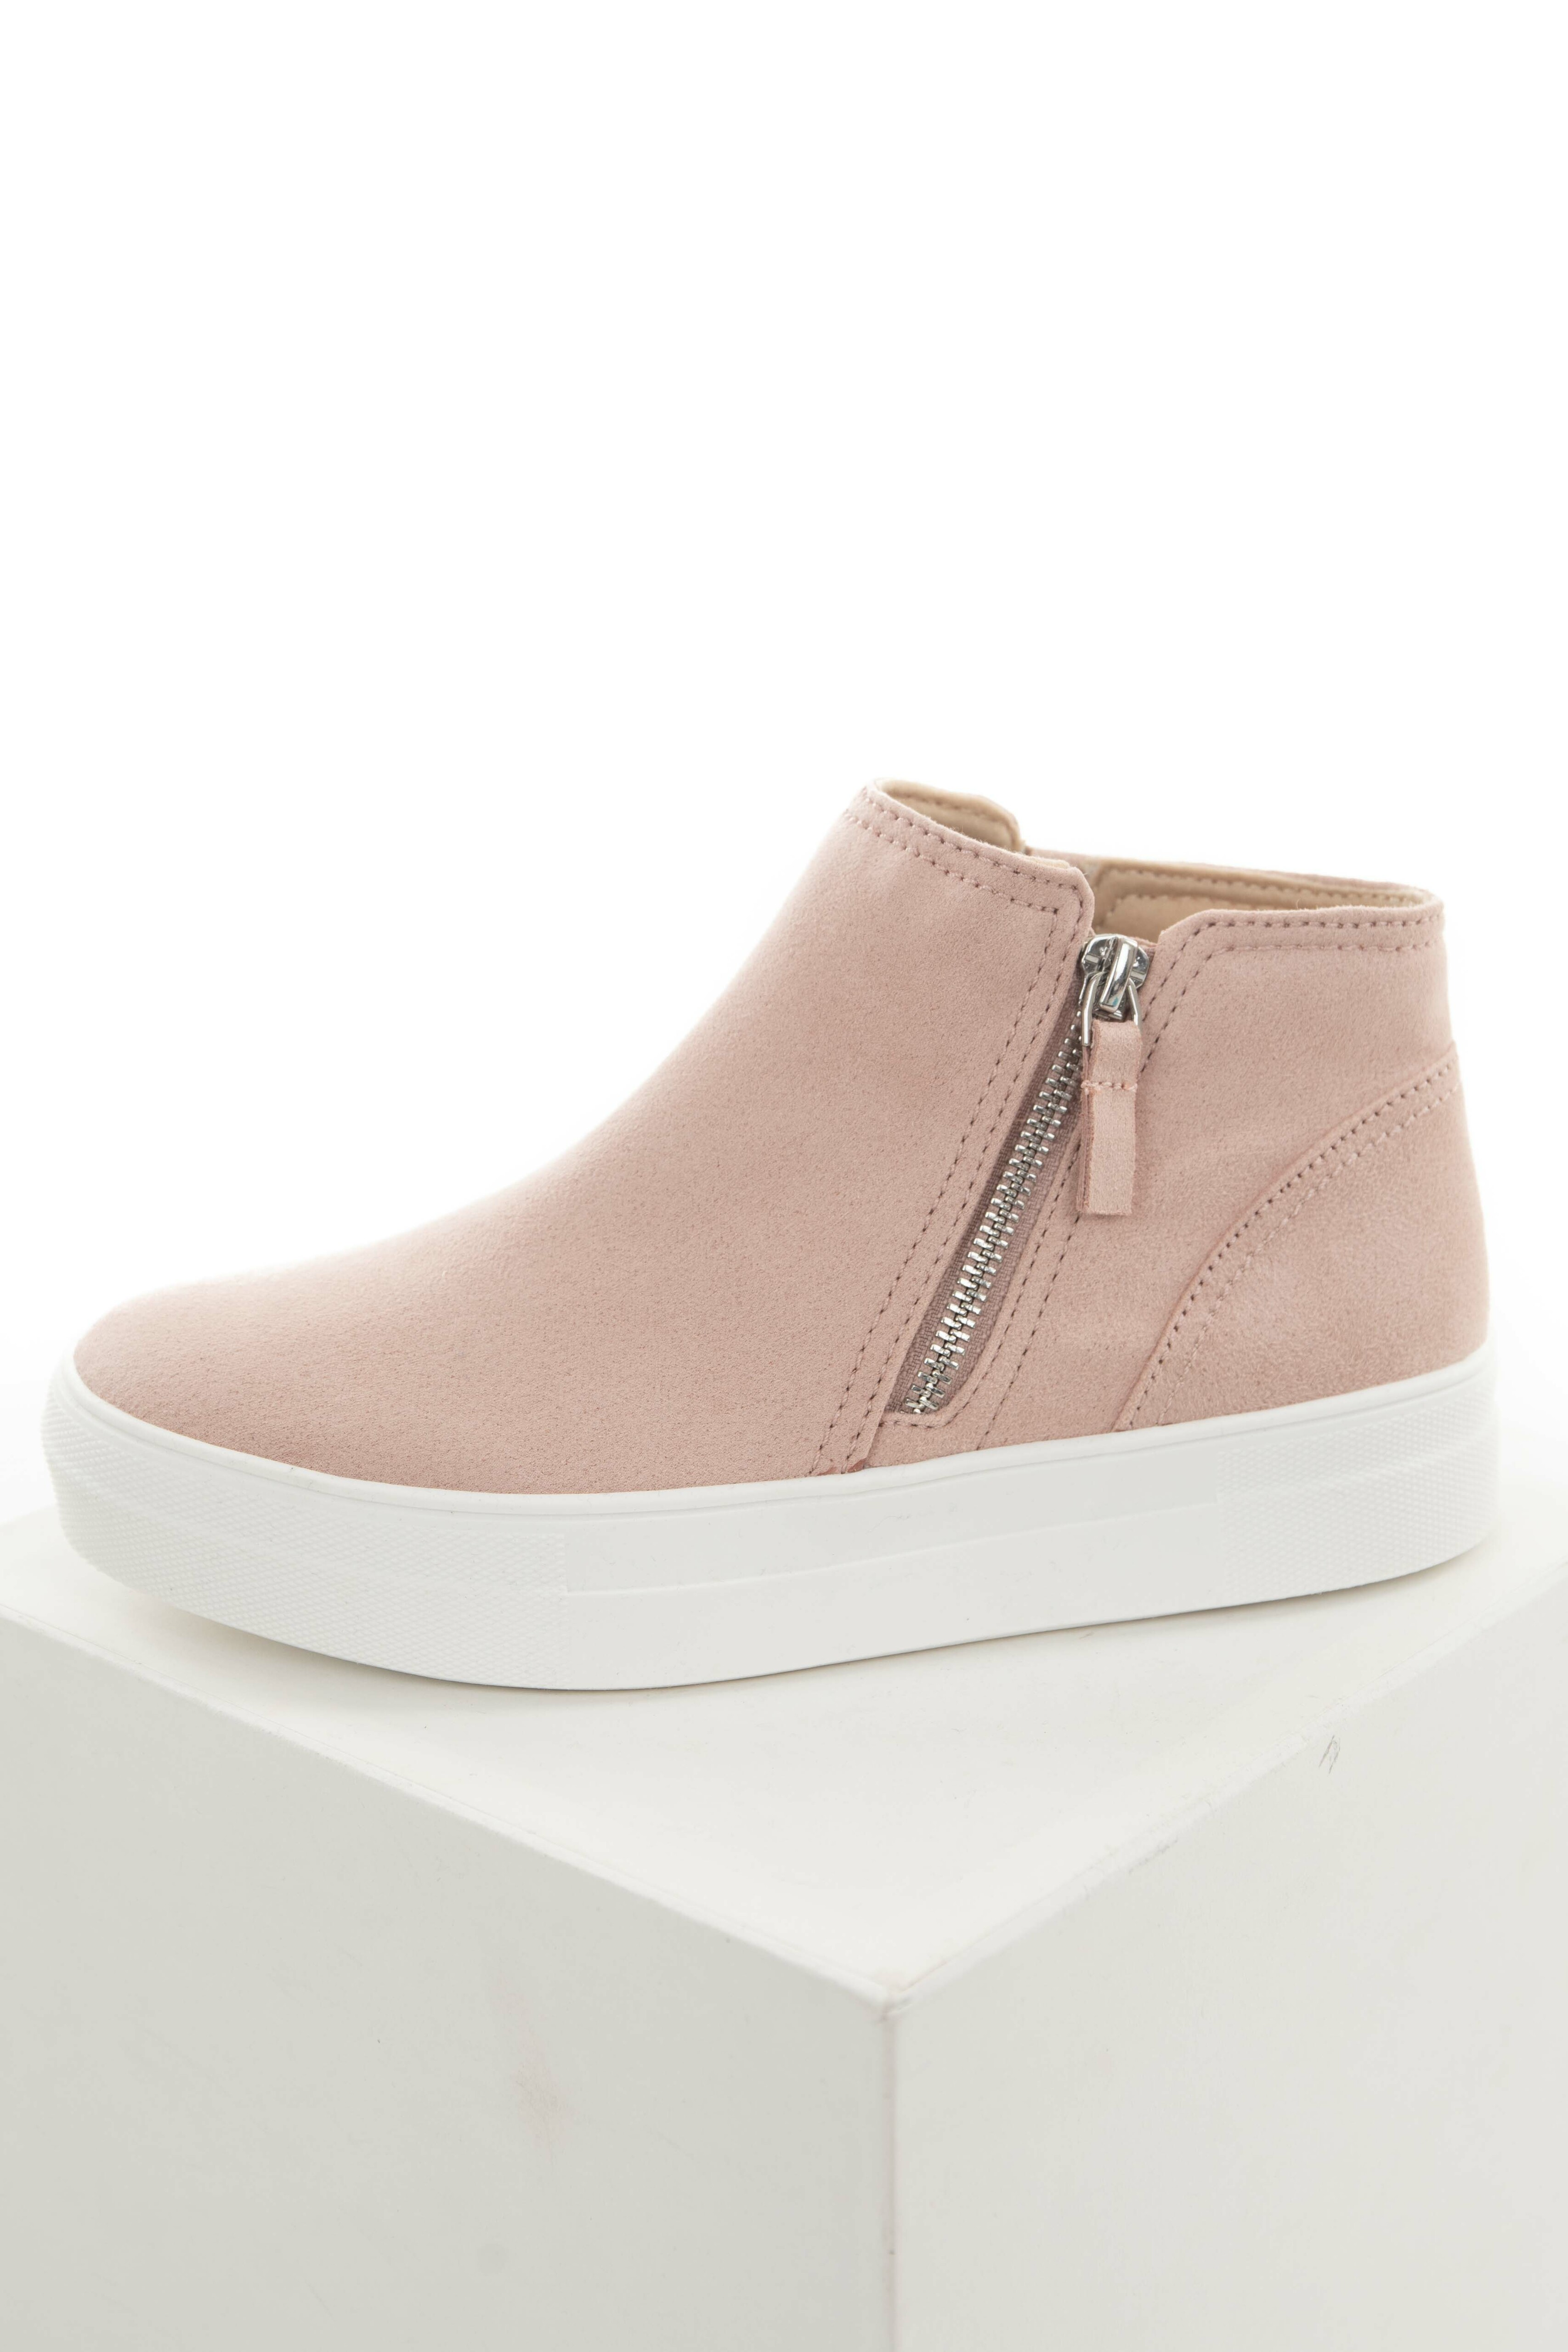 Blush Faux Suede Platform High Top Sneakers